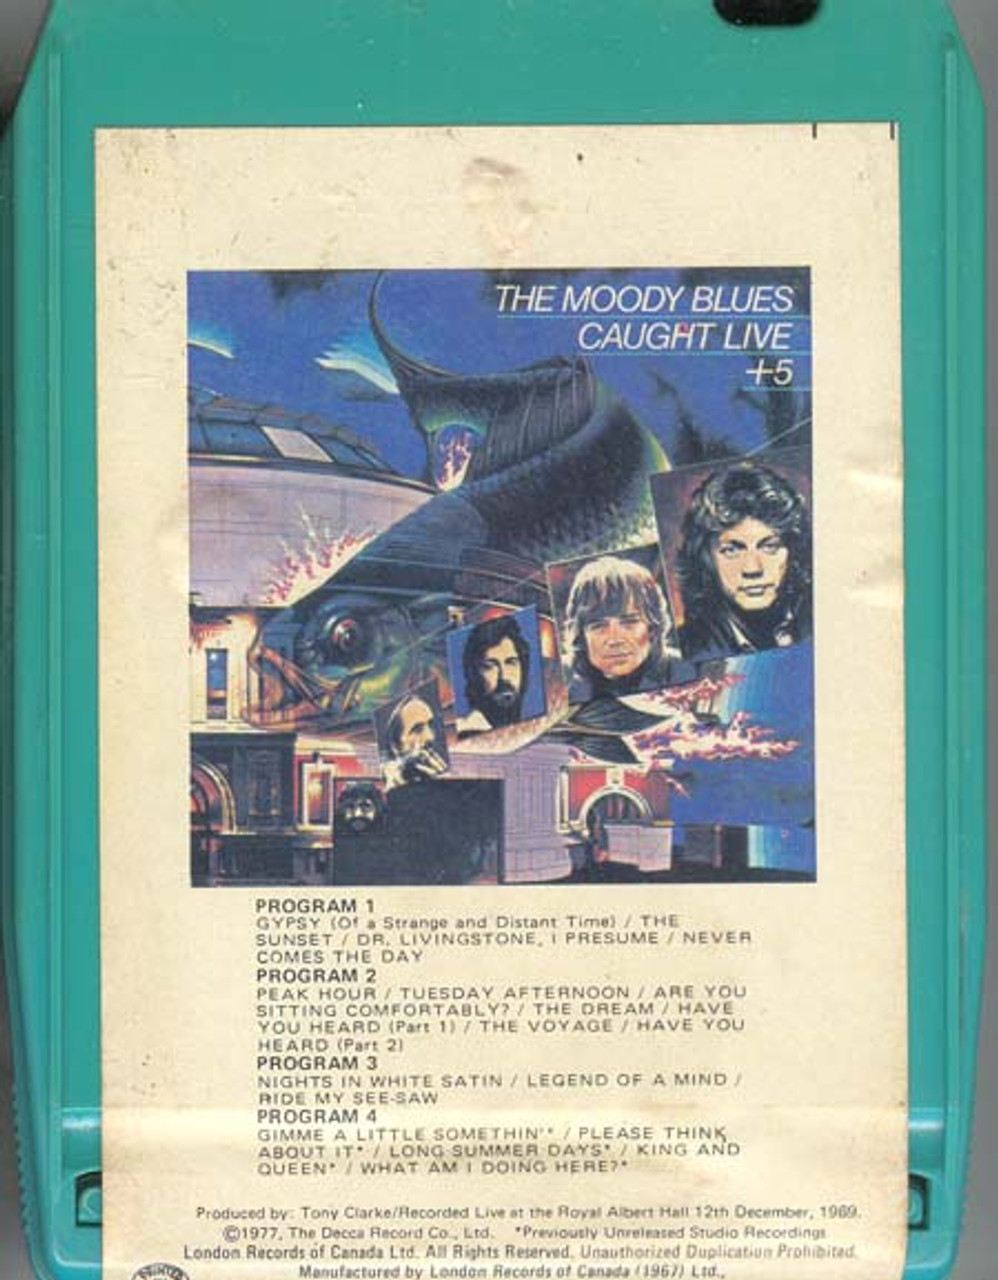 MOODY BLUES Caught Live +5 8 Track Tape